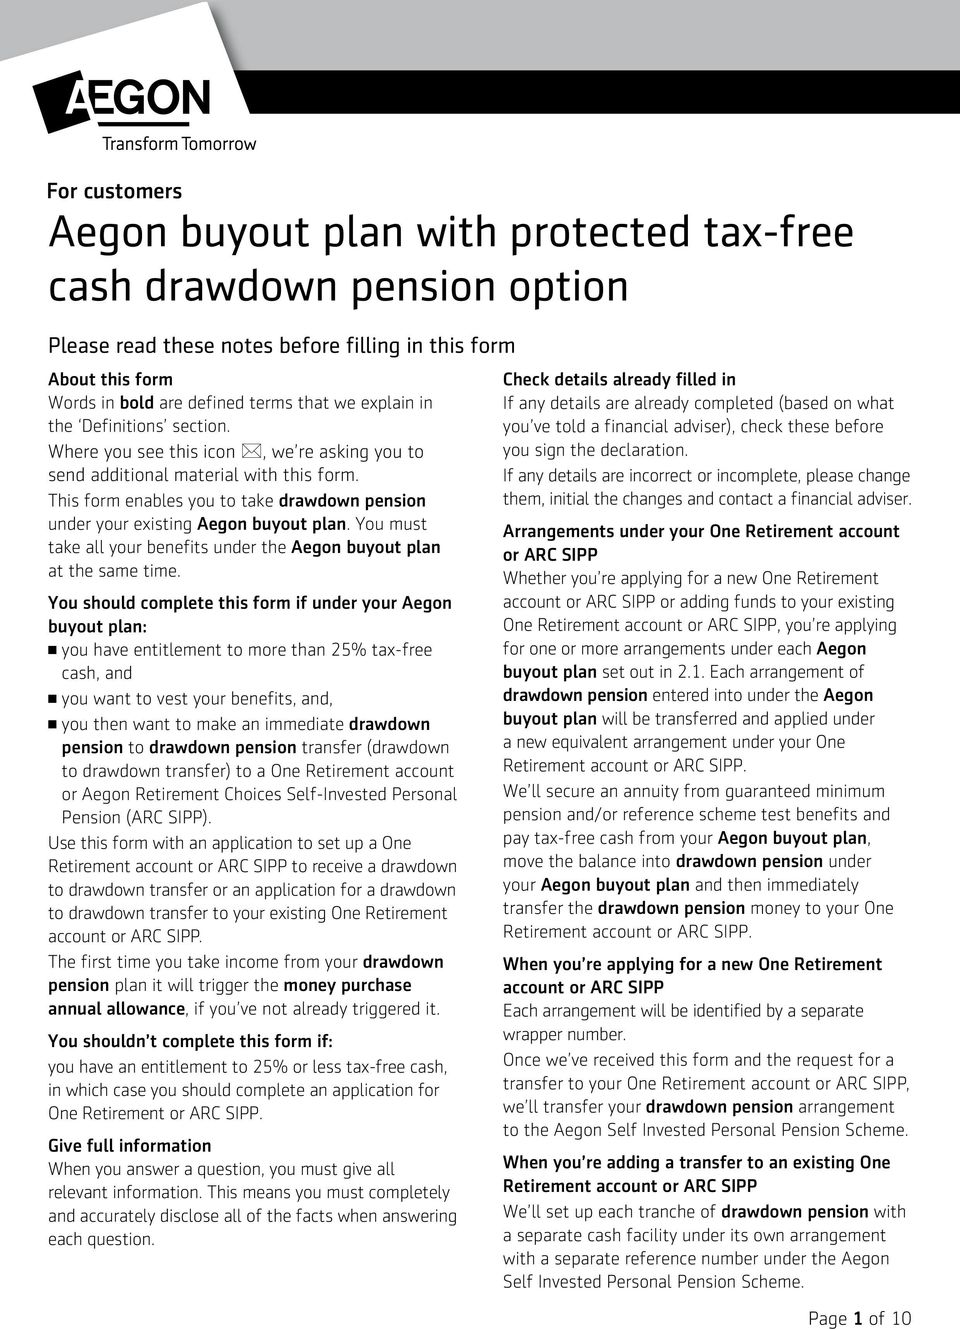 This form enables you to take drawdown pension under your existing Aegon buyout plan. You must take all your benefits under the Aegon buyout plan at the same time.